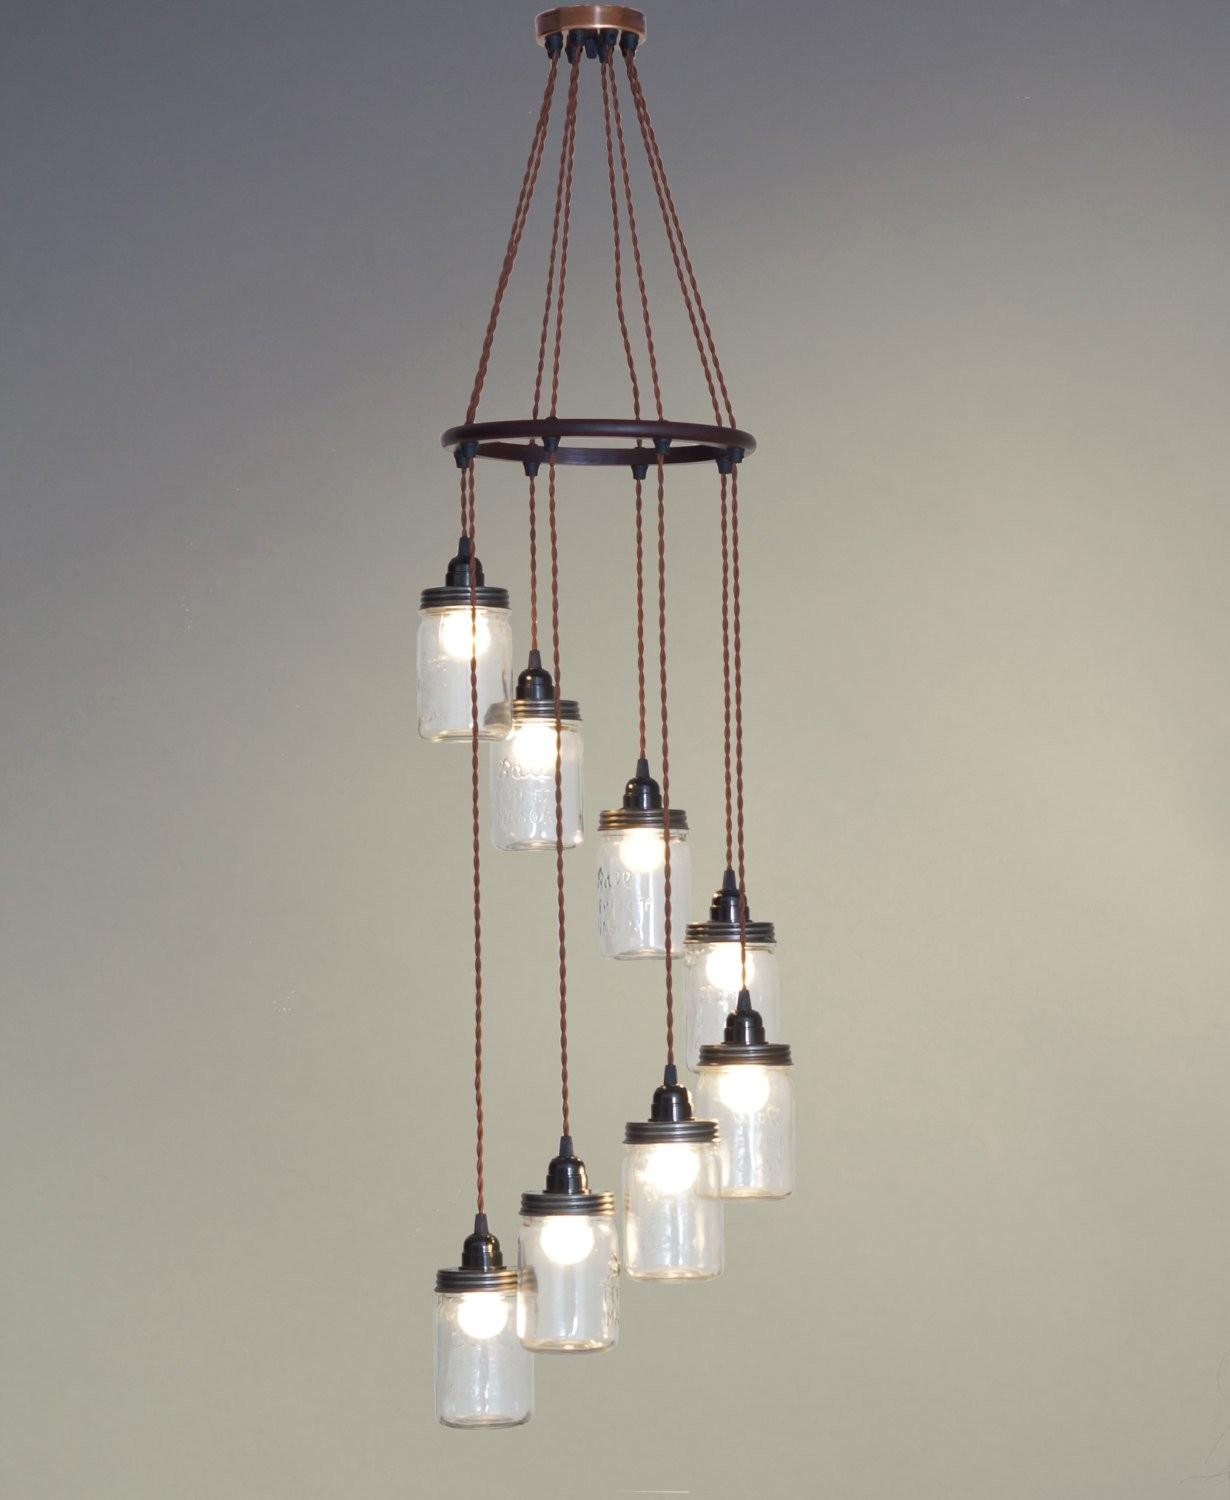 Unconventional Handmade Industrial Lighting Designs